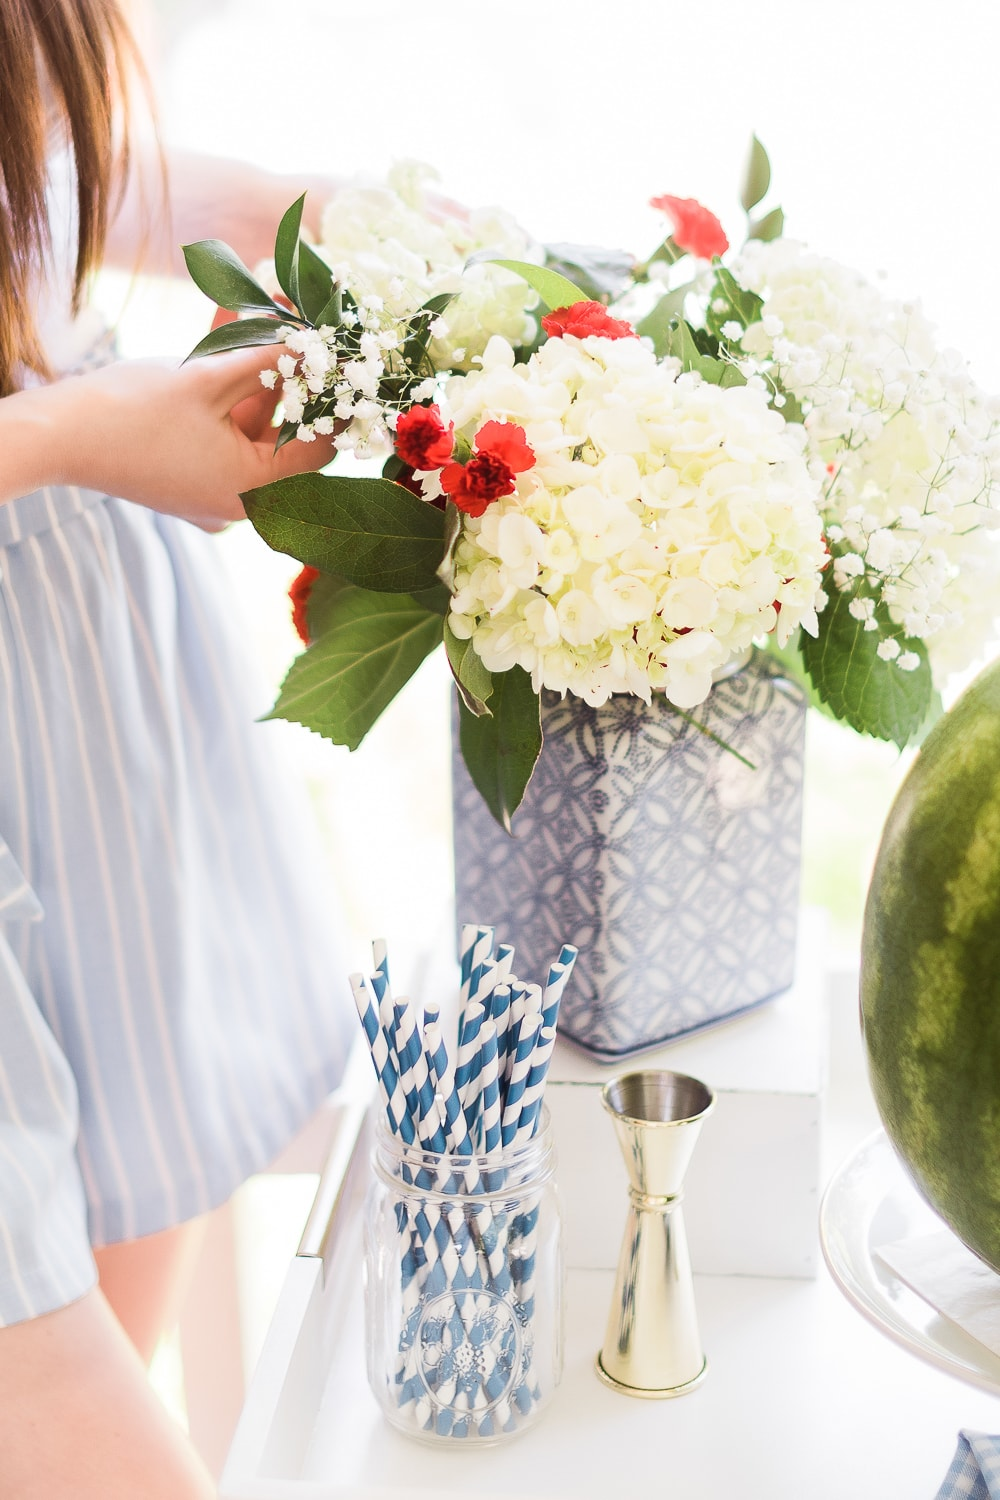 4th of July flower arrangement made using white hydrangeas, red carnations, baby's breath, greenery, and a blue and white ginger jar as a vase